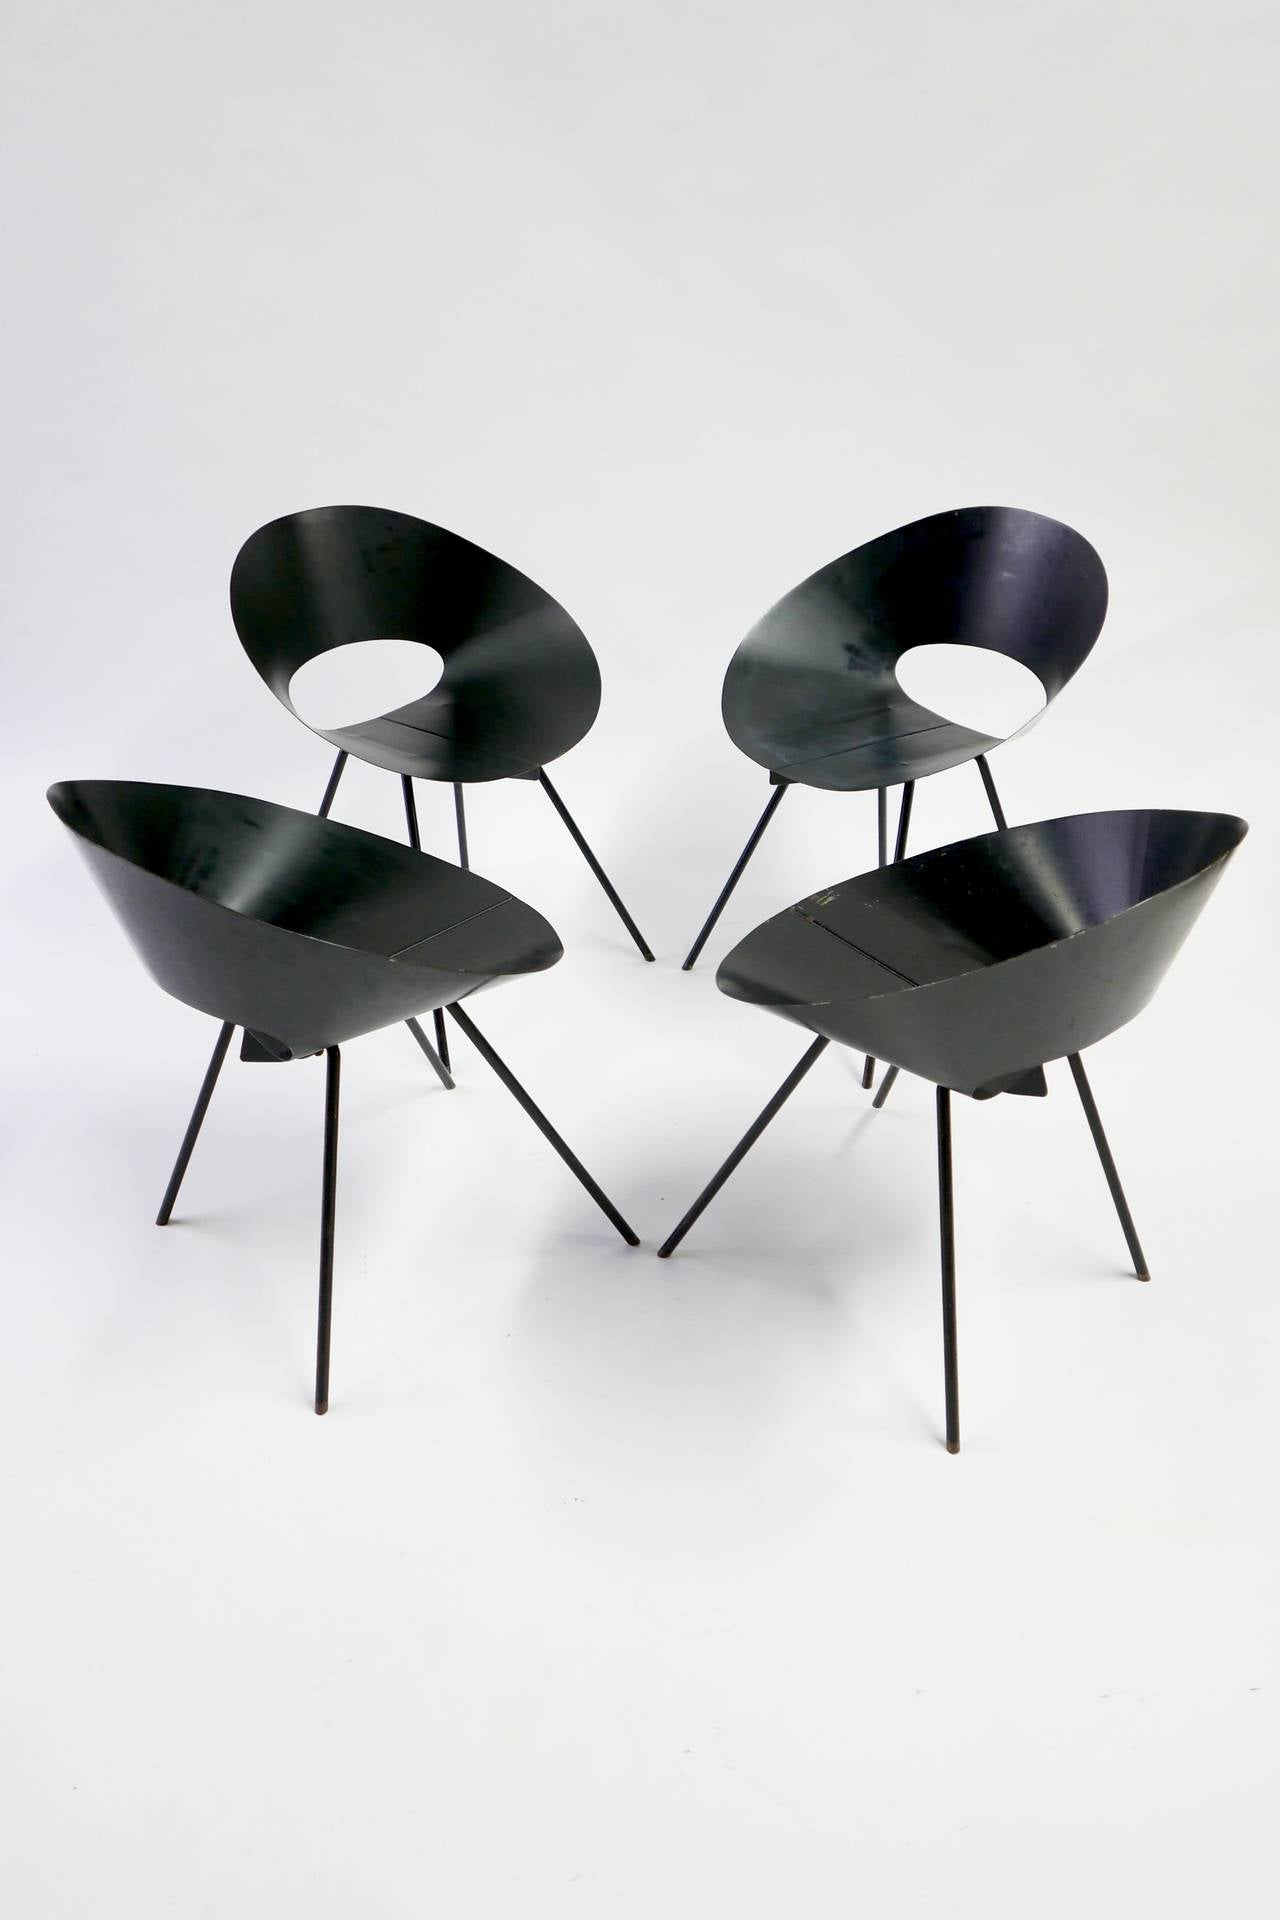 Donald knorr chairs knoll associates 1948 at 1stdibs for Knoll and associates